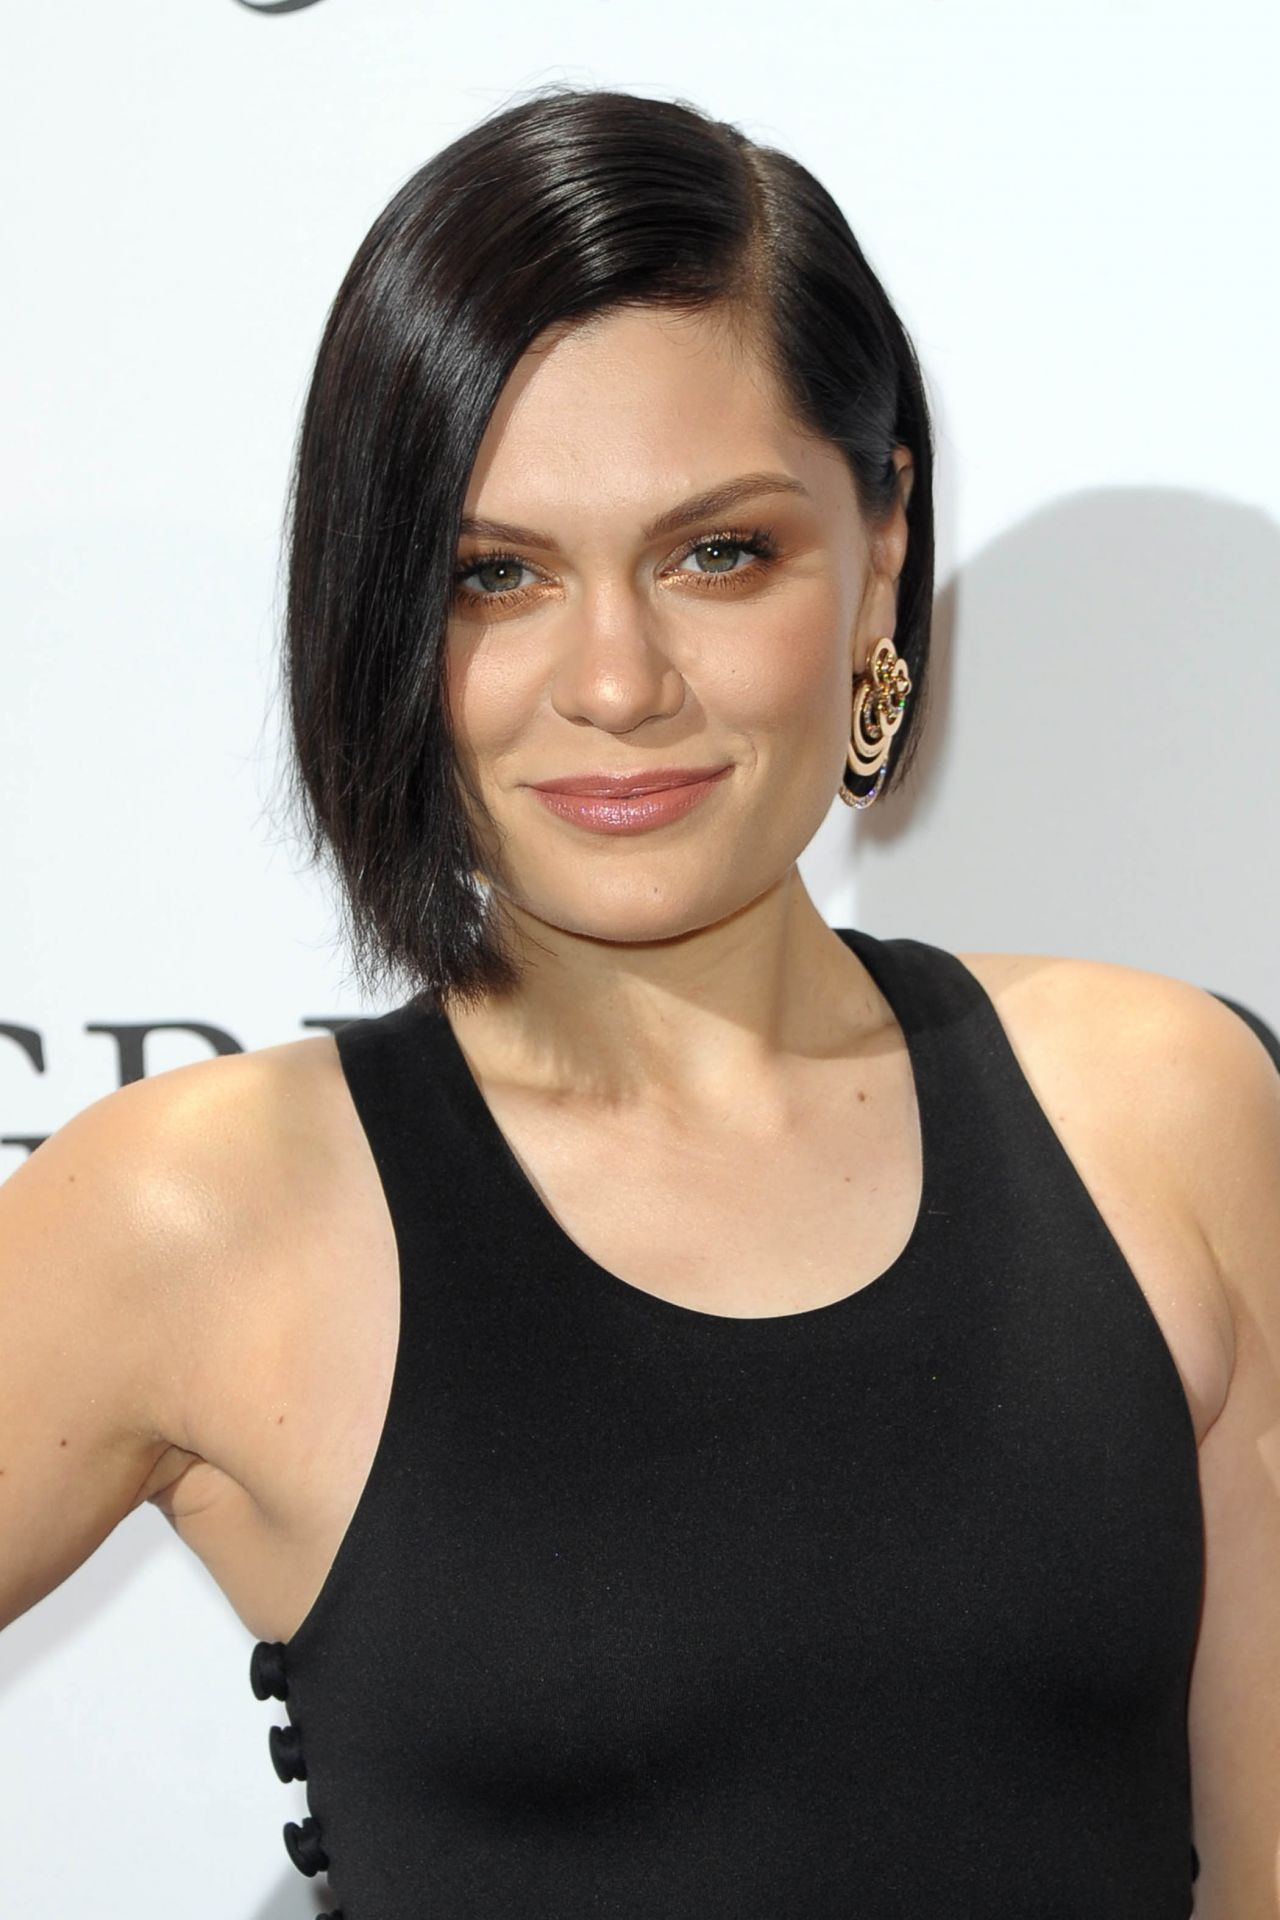 Jessie J At De Grisogono Party In Cannes France 05 23 2017